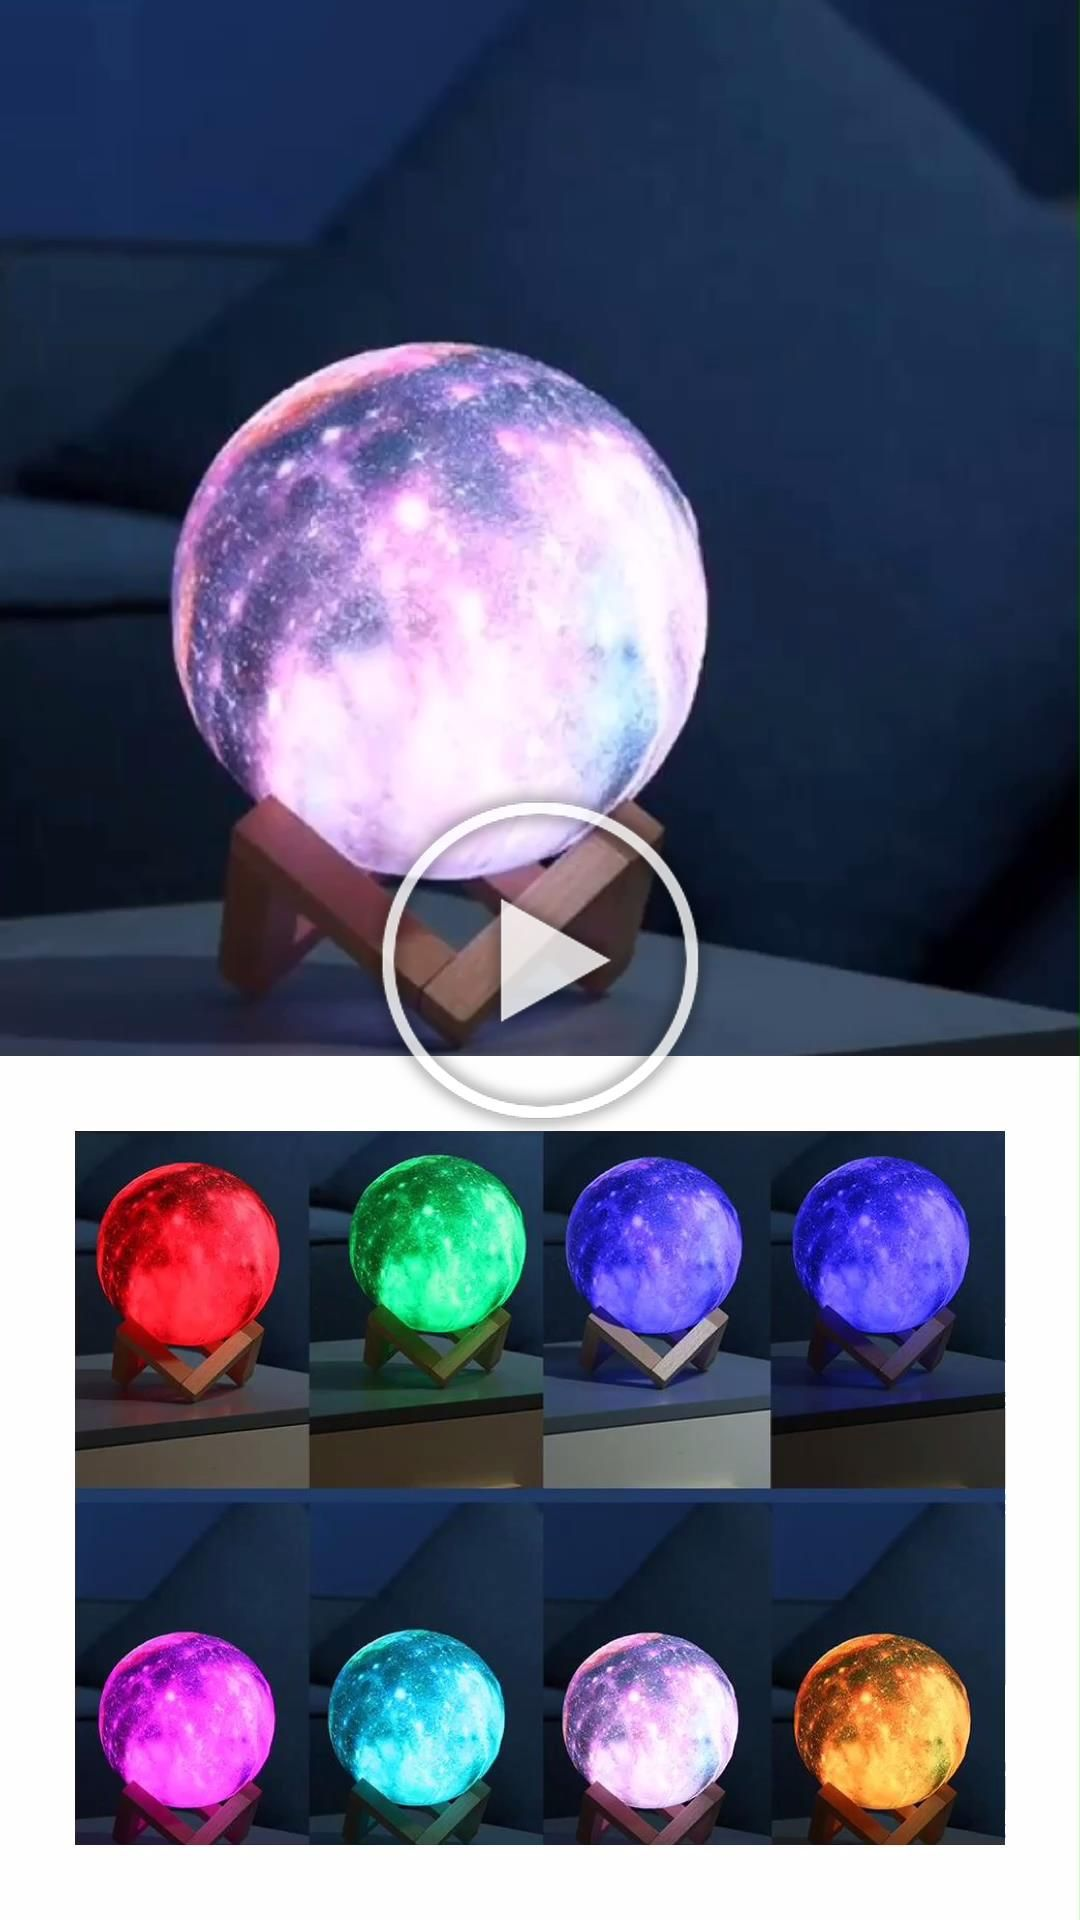 3d Printed Star Luna Moon Lamp Galaxy Bedroom Living Room Decor Lighting Ideas Moon Homedecor Lamp In 2020 Galaxy Bedroom Galaxy Room Kid Room Decor